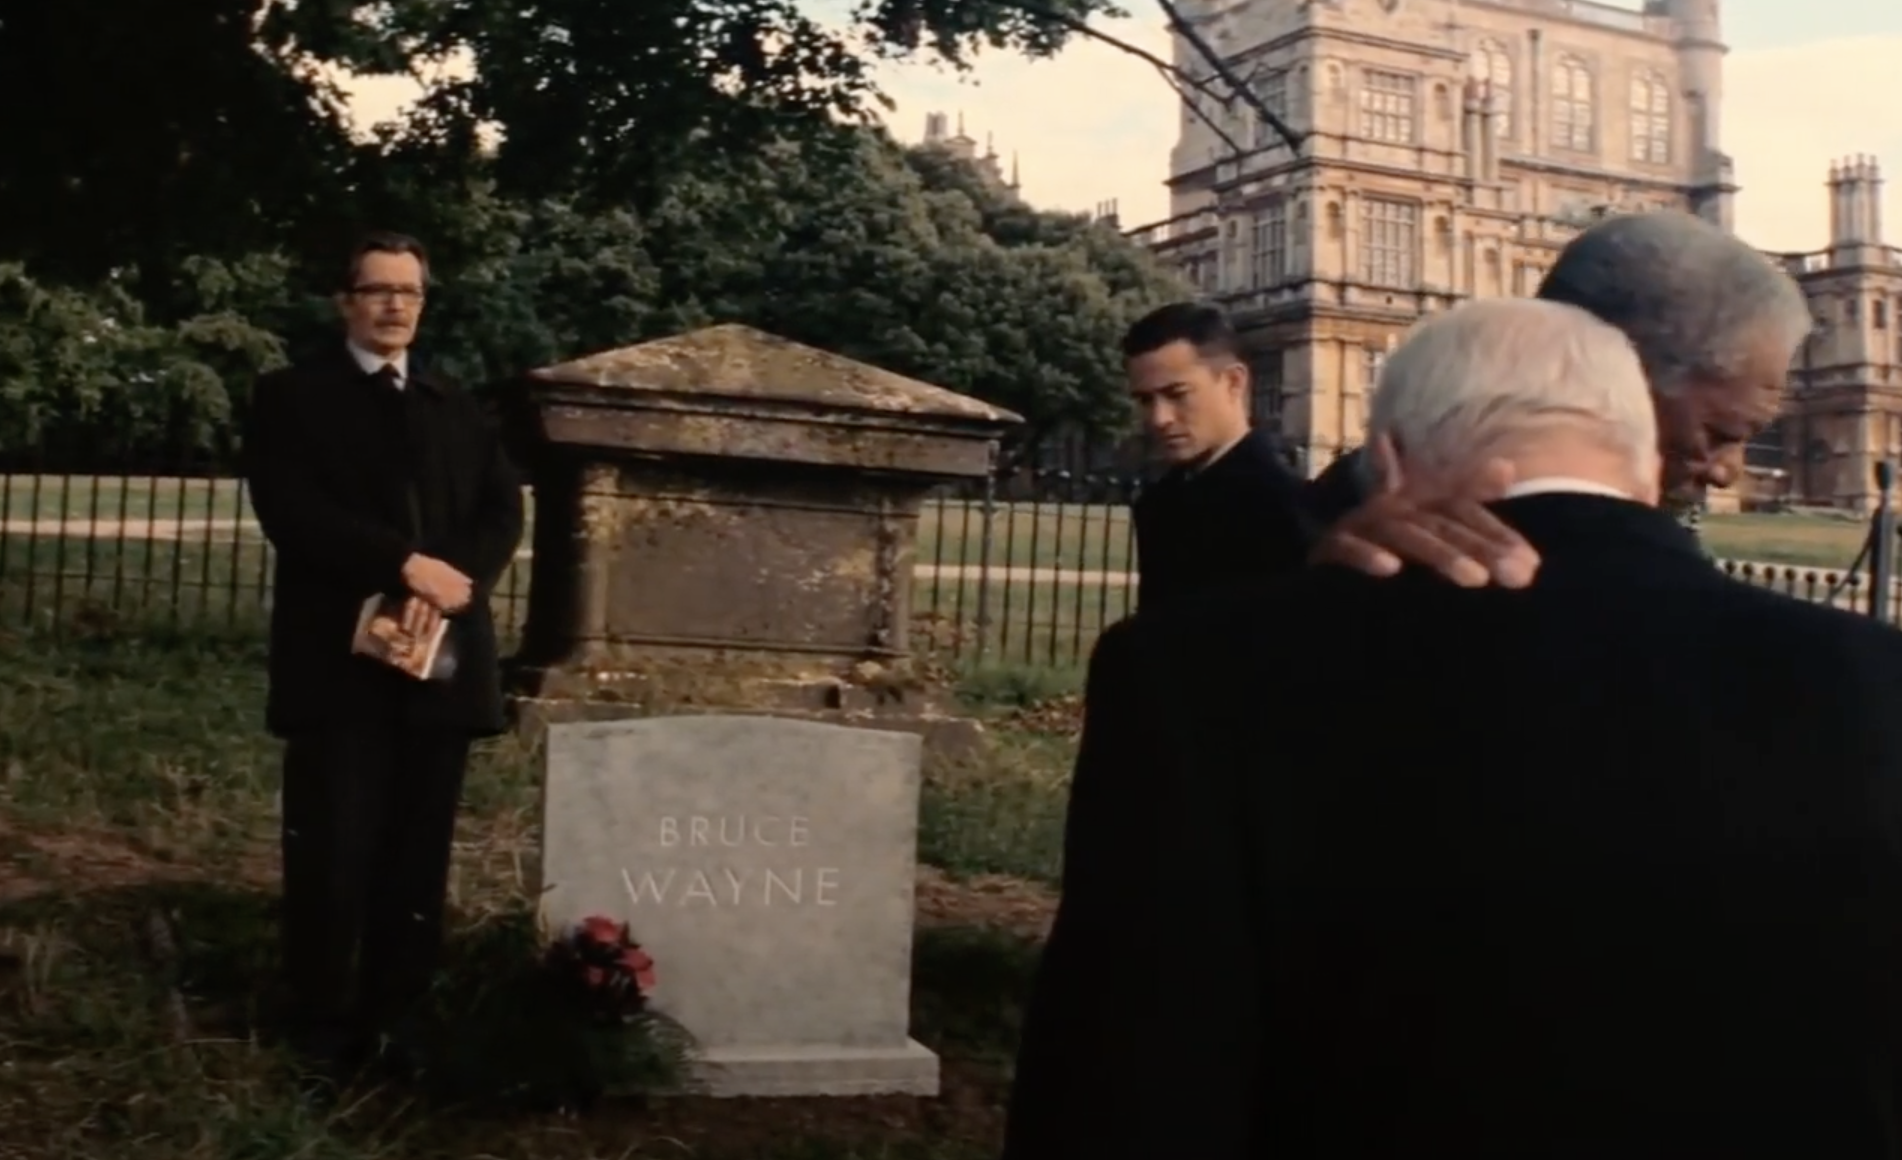 The tombstone of Bruce Wayne